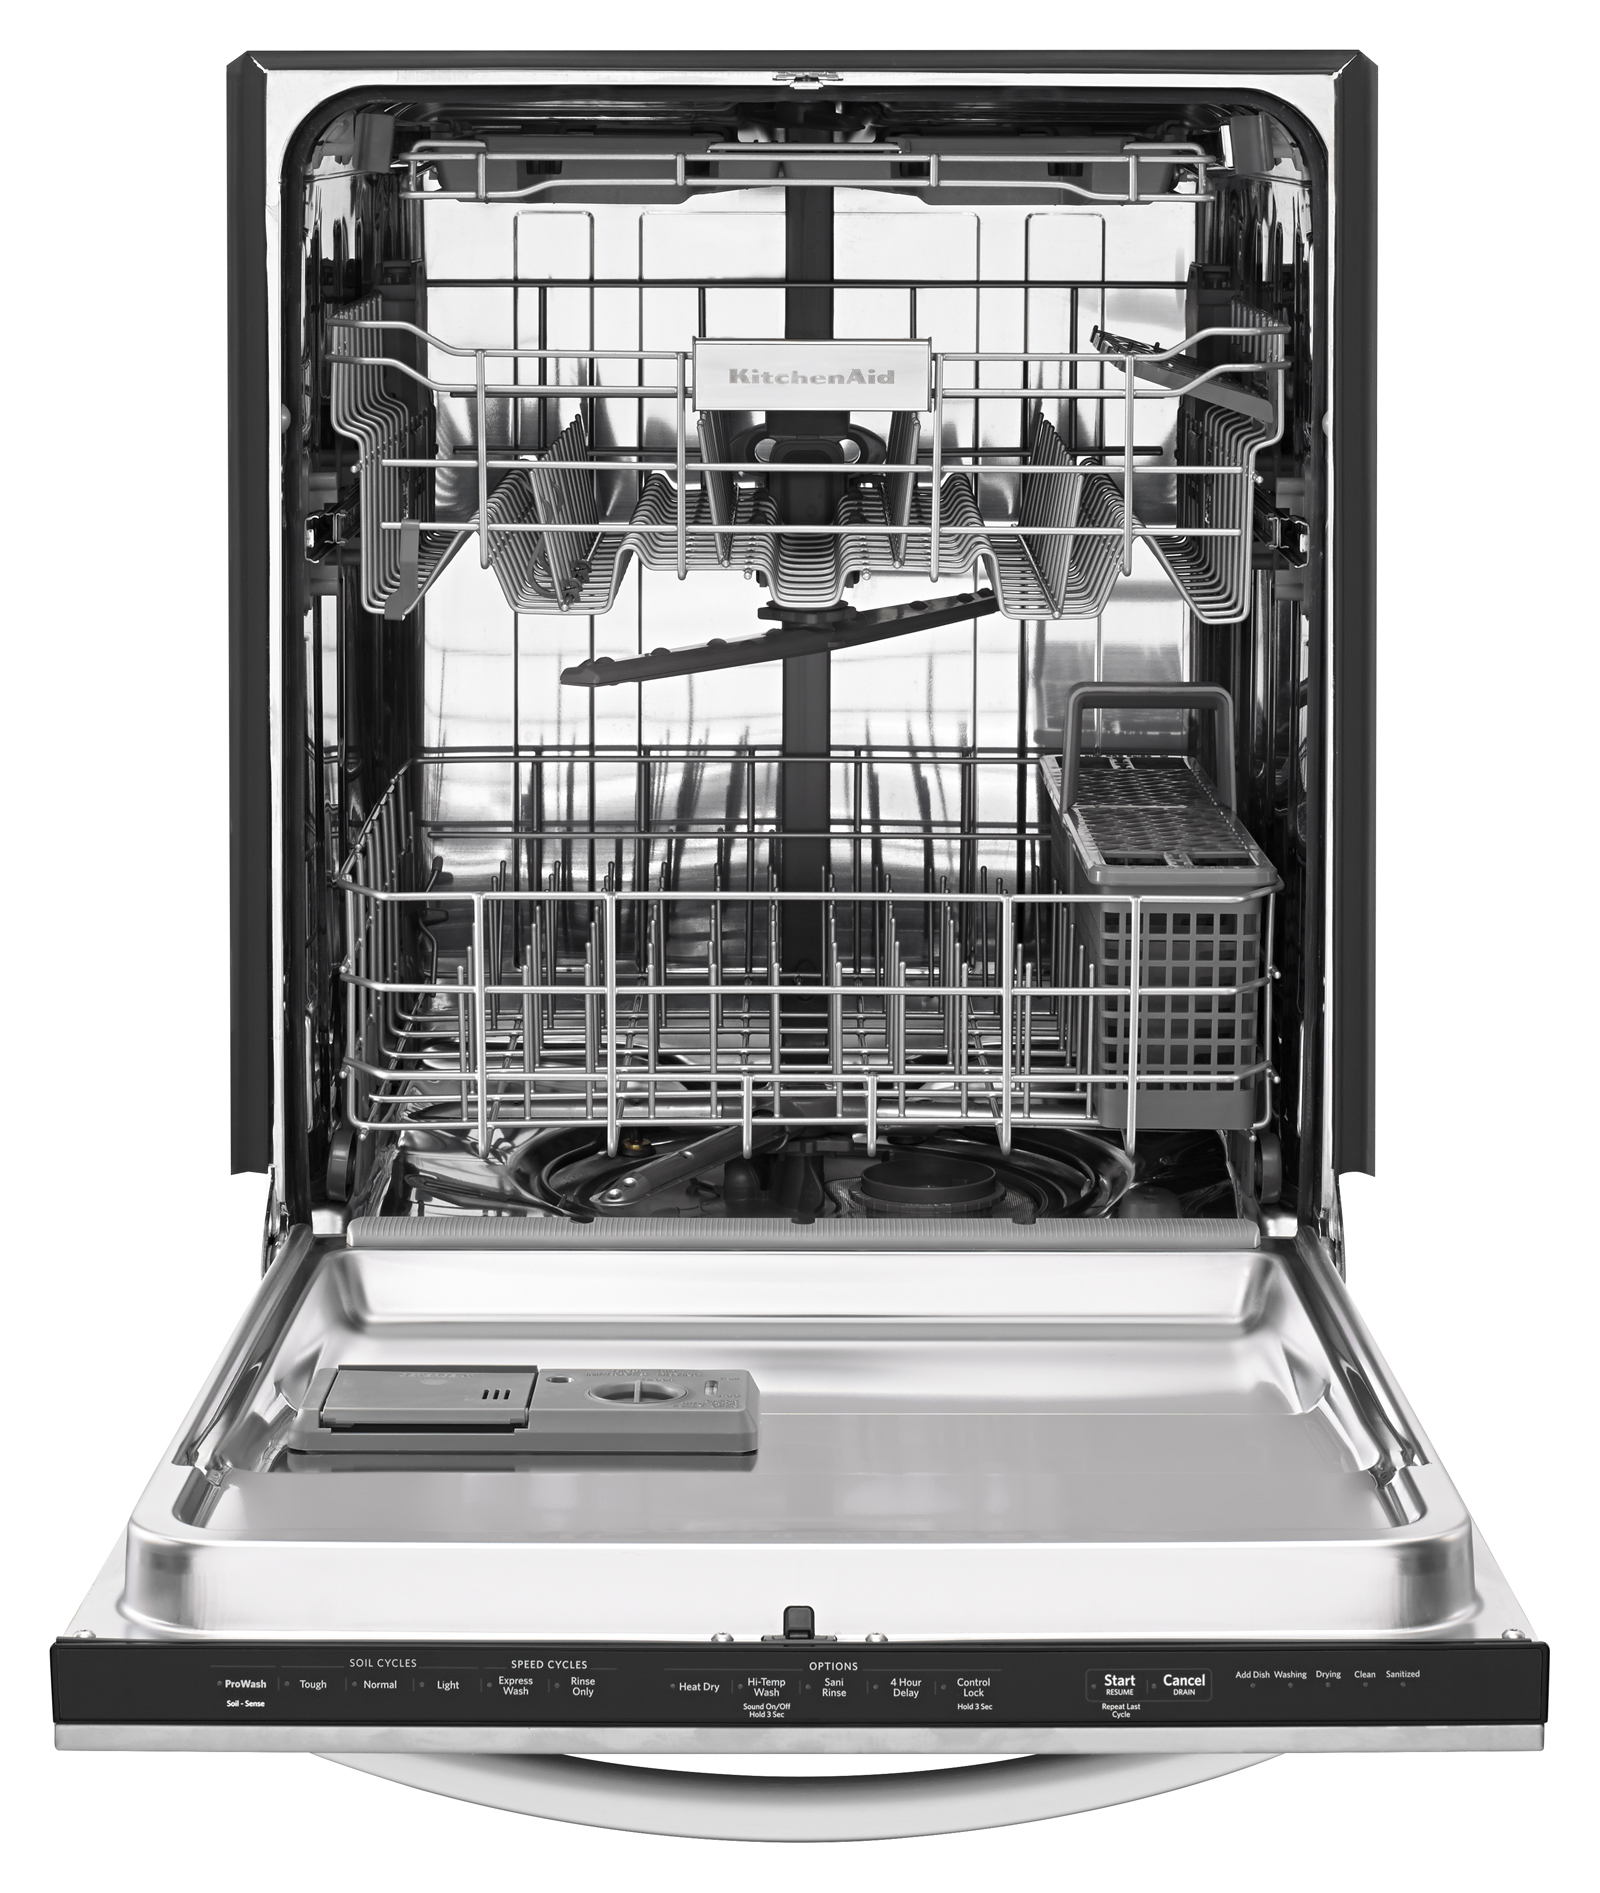 KitchenAid 24-in. Built-in Dishwasher w/ Third Rack - Stainless Steel